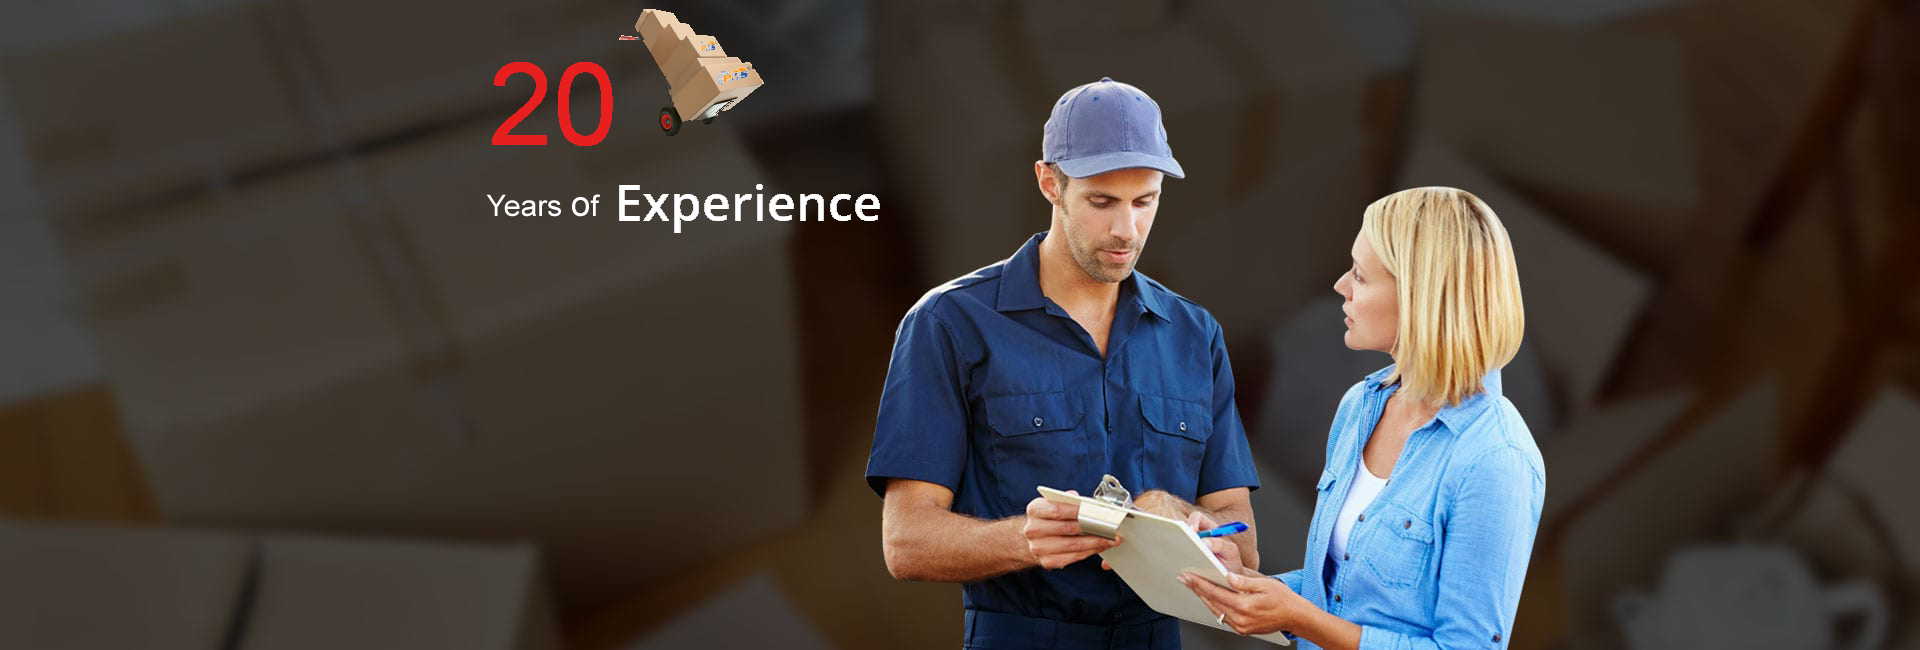 PMS Care Packers and Movers Pune, Packers and Movers in Pune